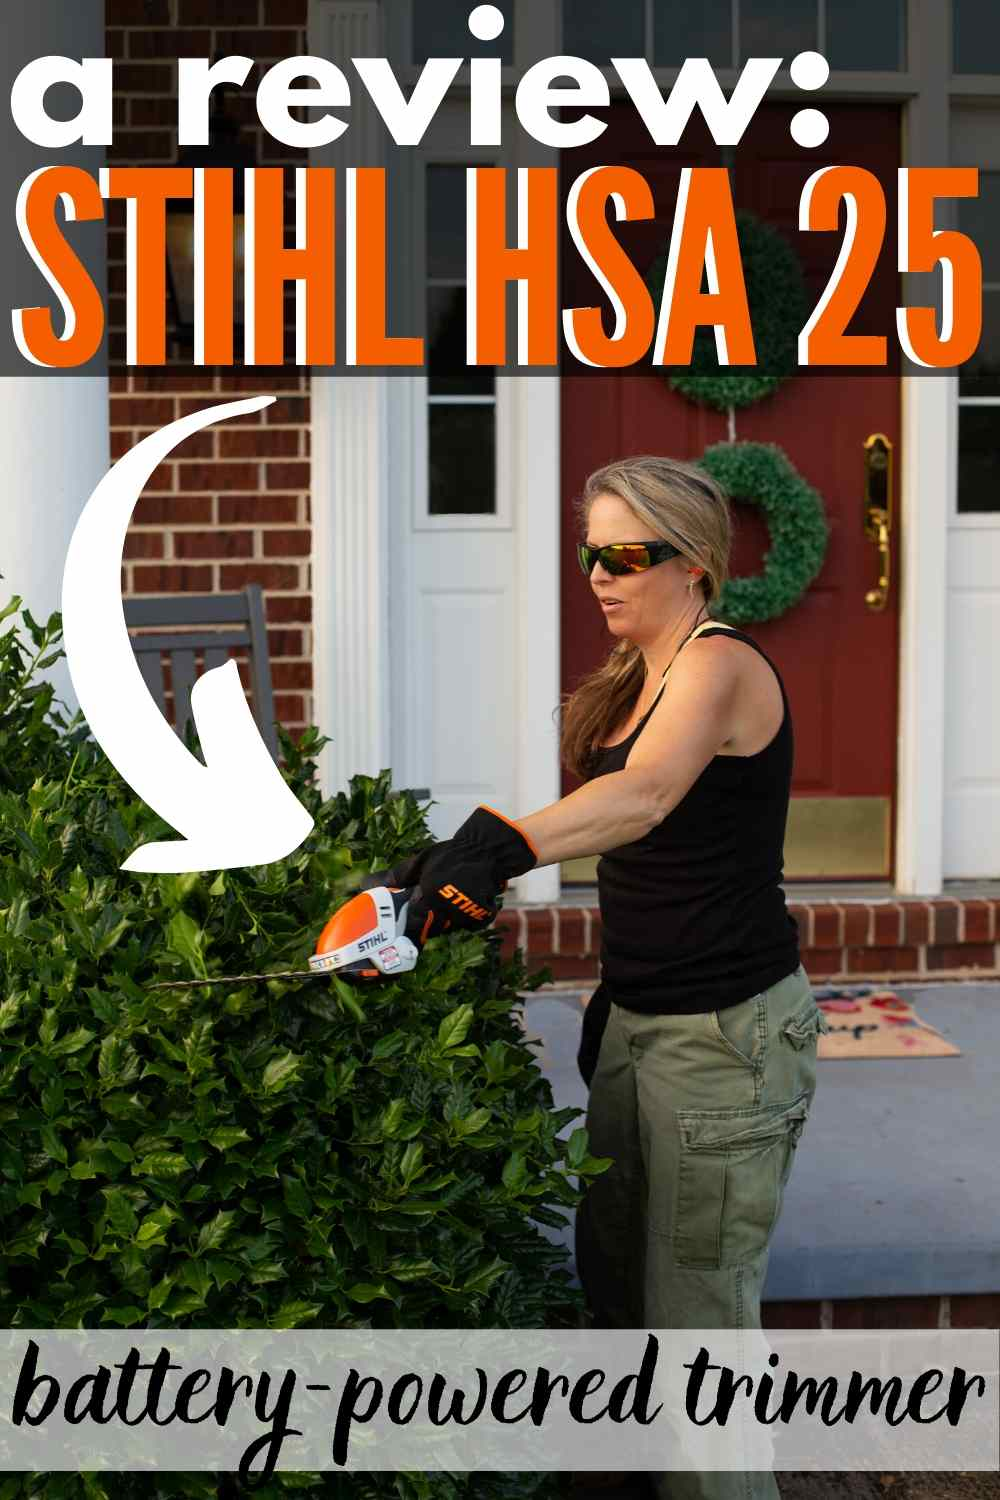 "STIHL HSA 25 in use trimming a large holly hedge in front of brick front home with white columns text ""a review"" STIHL HSA 25 battery-powered trimmer"""